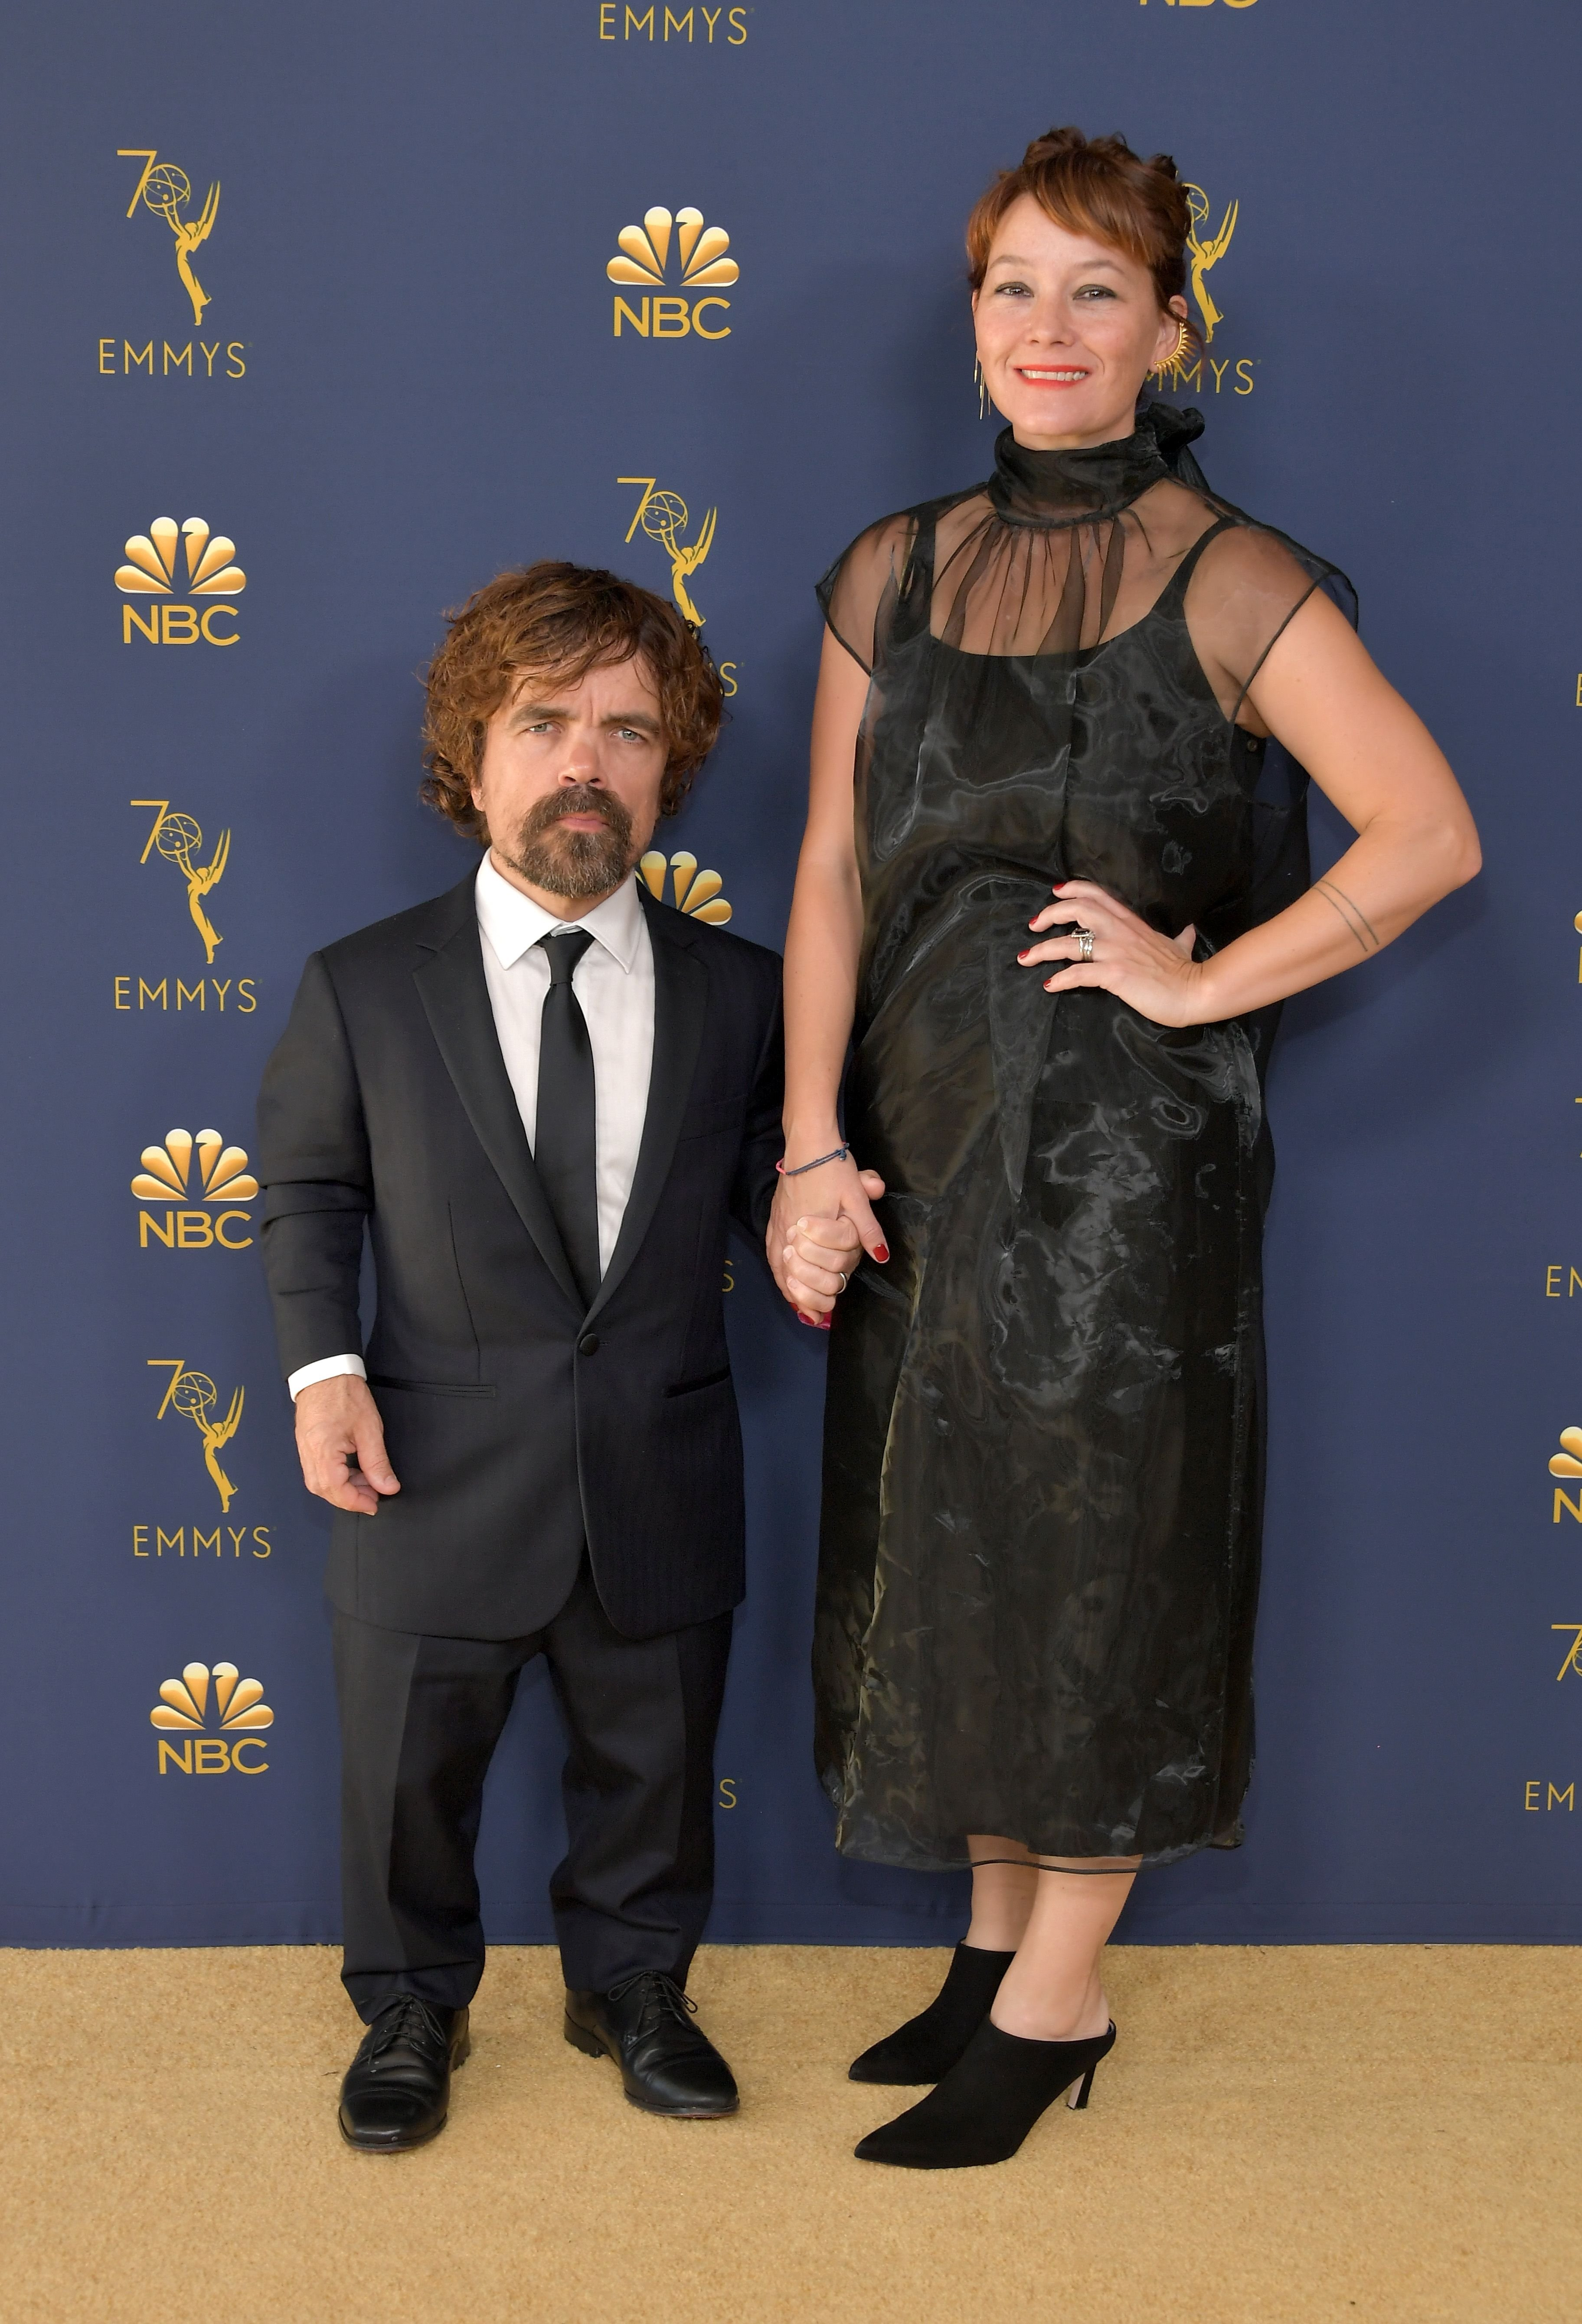 Peter Dinklage and Erica Schmidt at the 70th Emmy Awards in 2018 in Los Angeles, California   Source: Getty Images